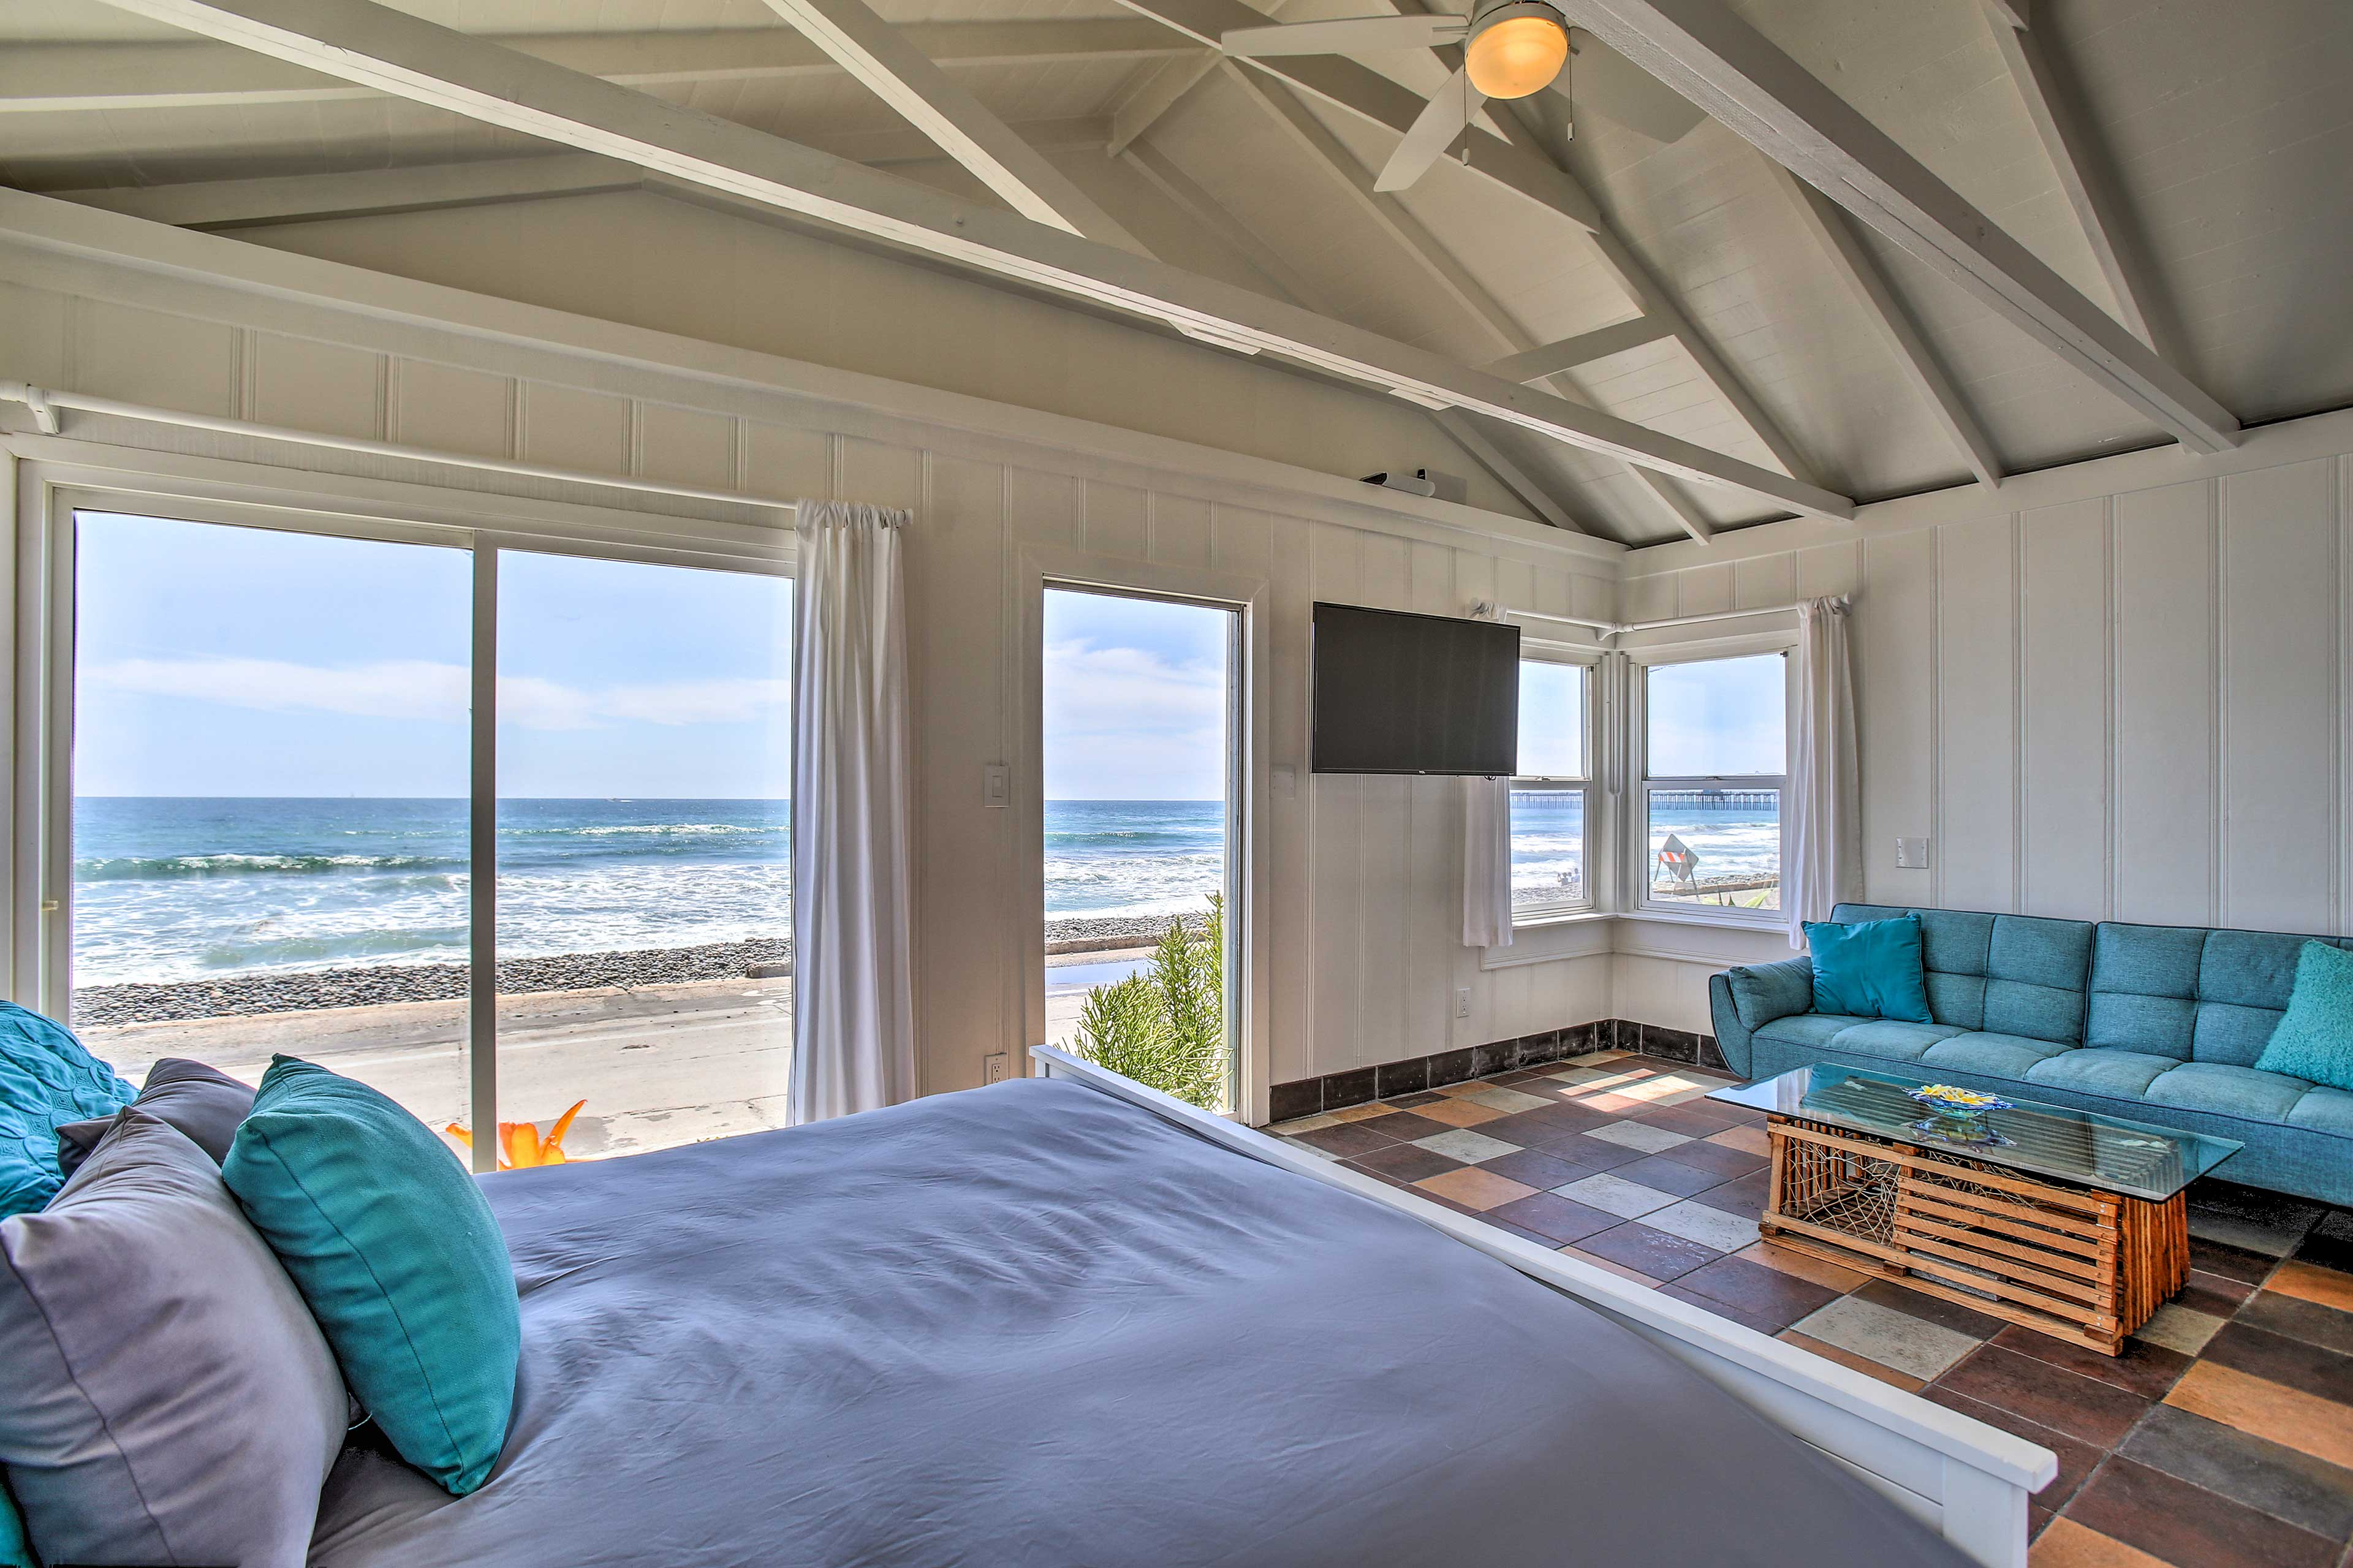 The cozy queen bed has spectacular views as well.